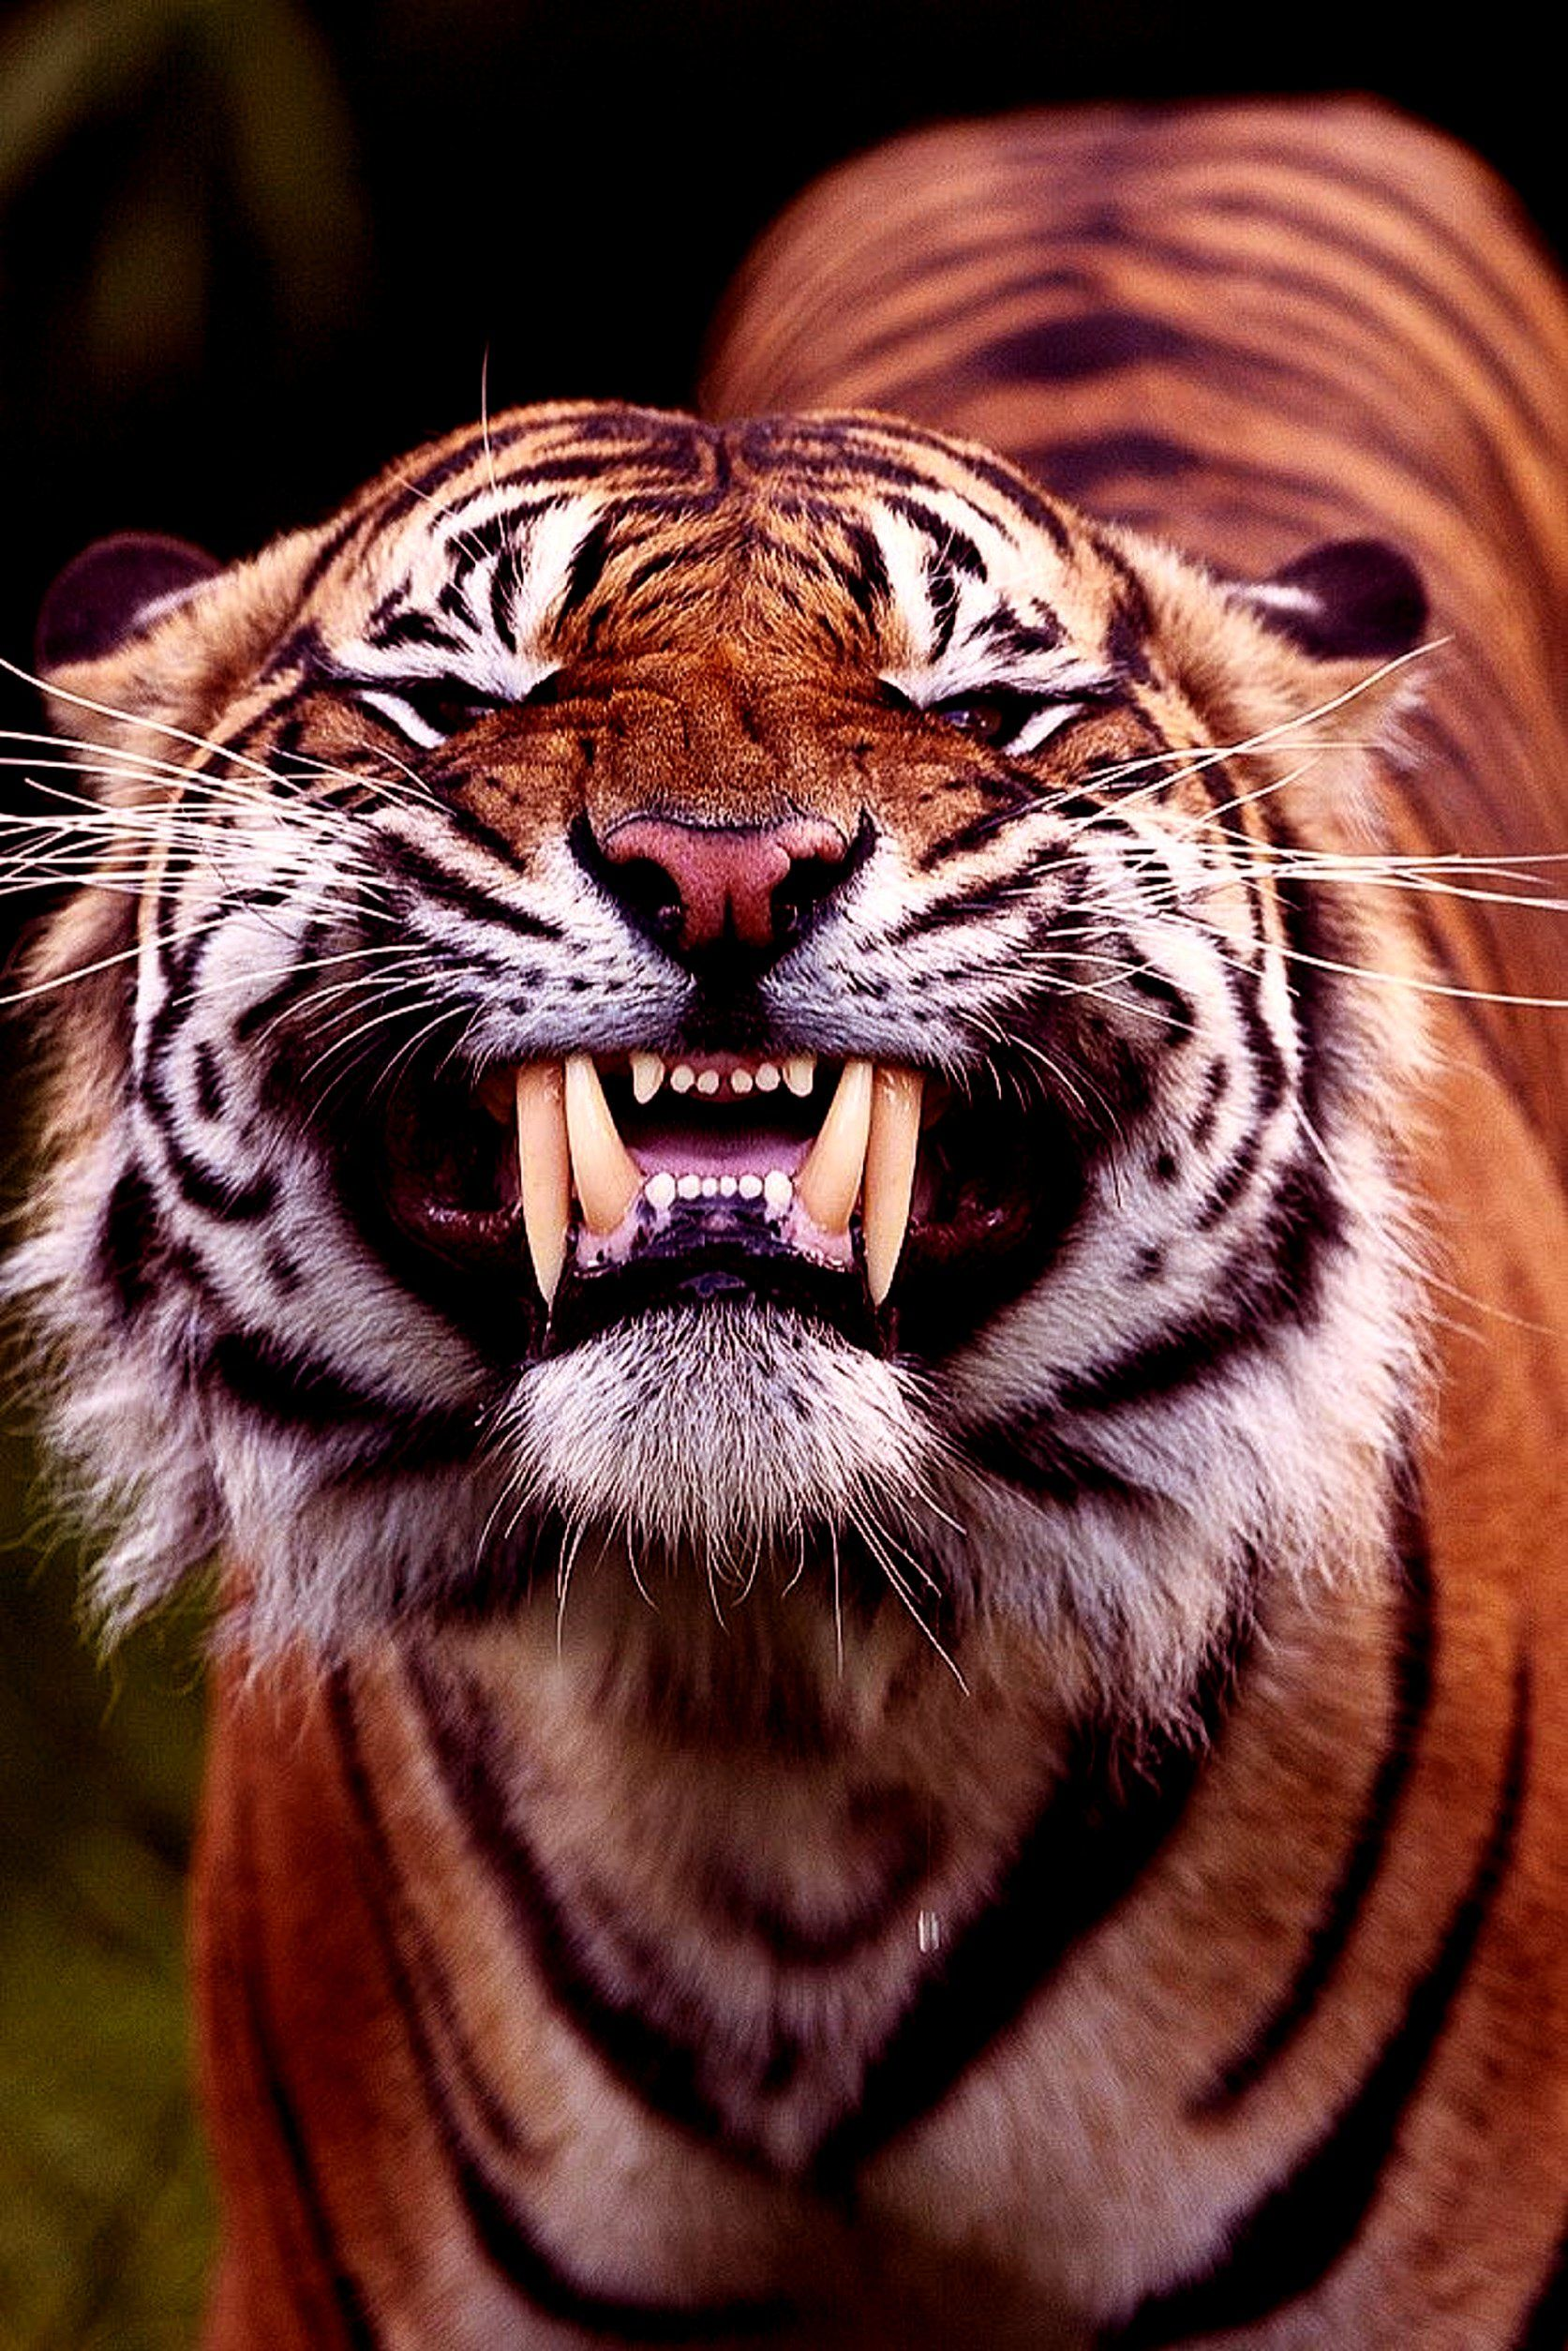 A TIGER   TIGERS   Pinterest   Cats, Animals and Big cats e0a07095e2